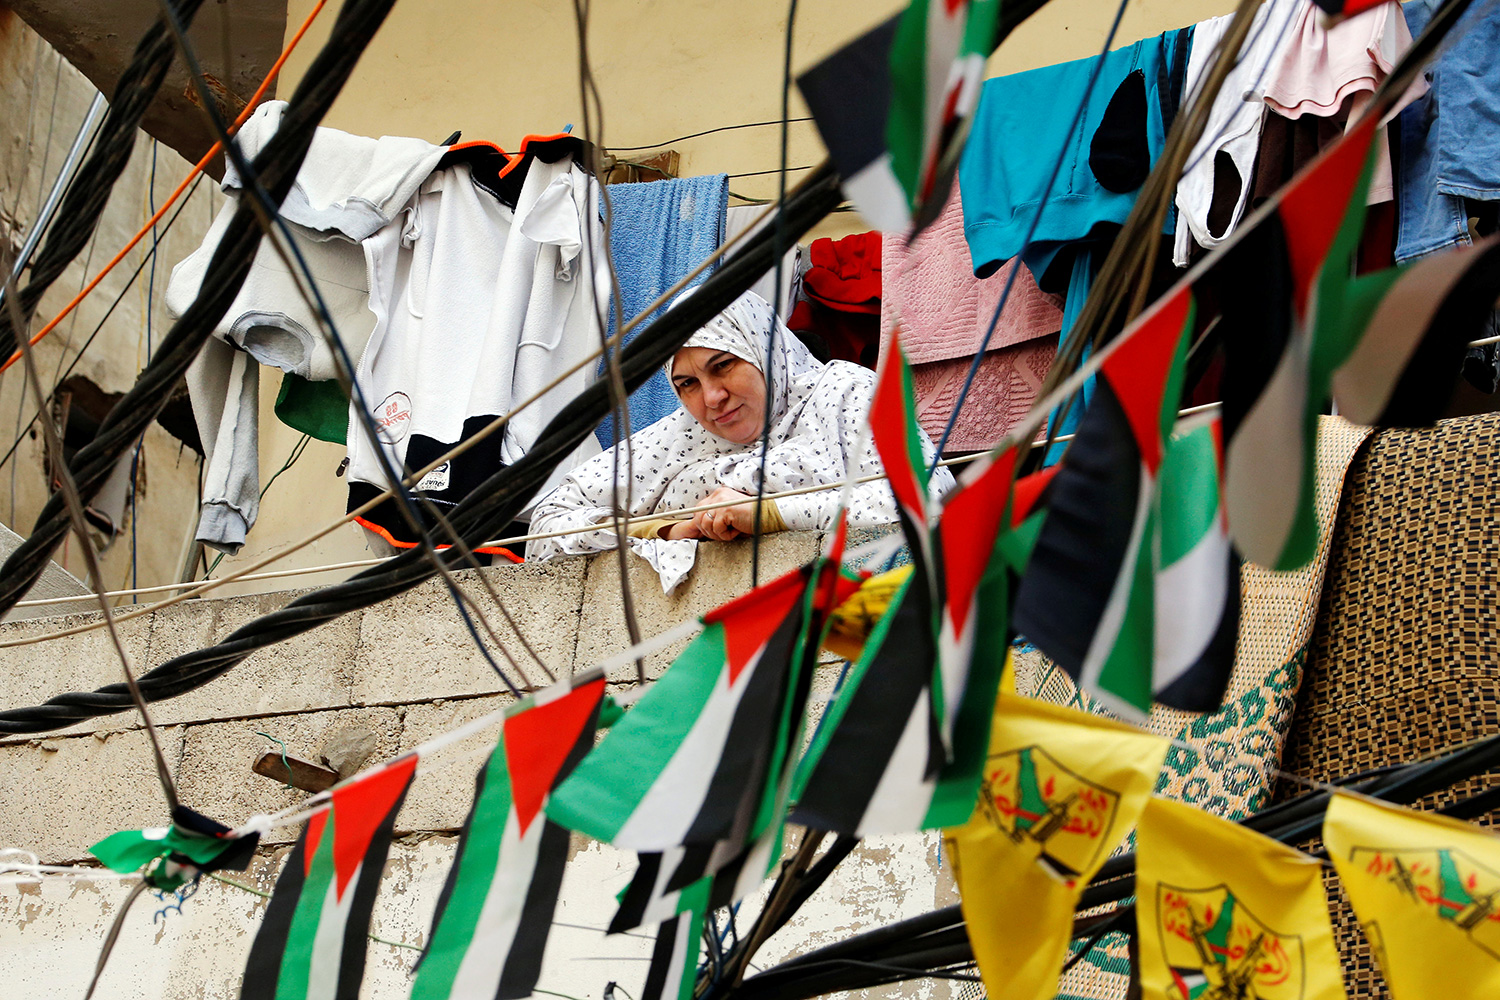 Picture shows the woman looking down at the camera from a balcony above. Clothes strewn on a line behind her and a string of Palestinian flags hung between her and the camera visually mix to make the scene very busy with billowing cloth.